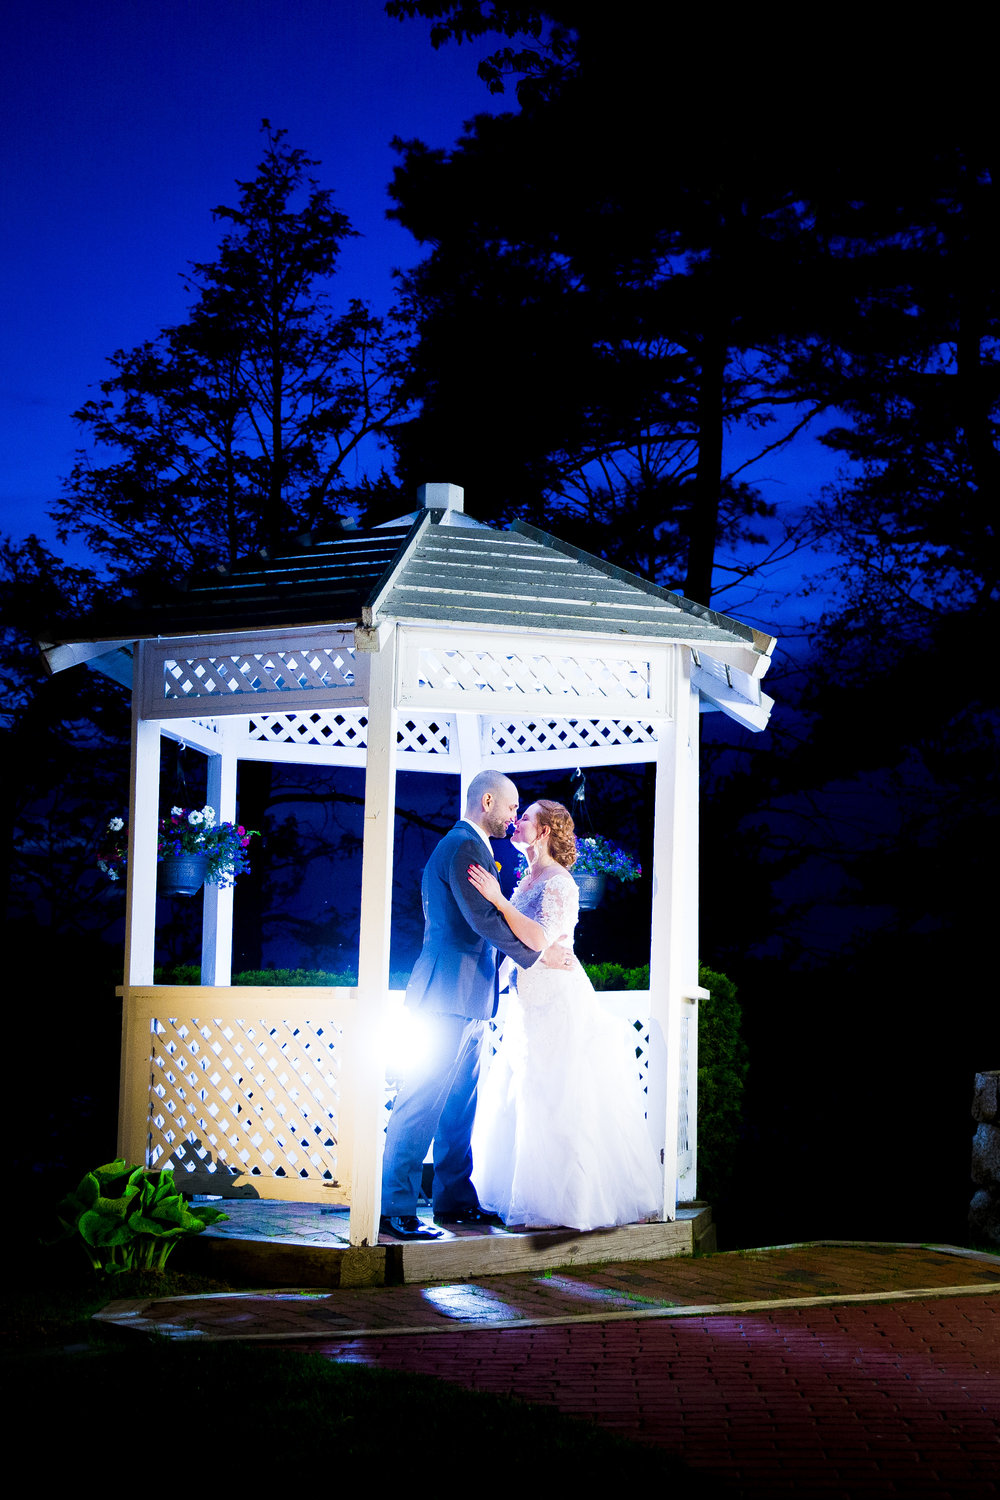 314A3351+Giovanni+The+Photographer+Top+Wedding+Photography+Lake+Pearl+Wrentham+Ma.jpg